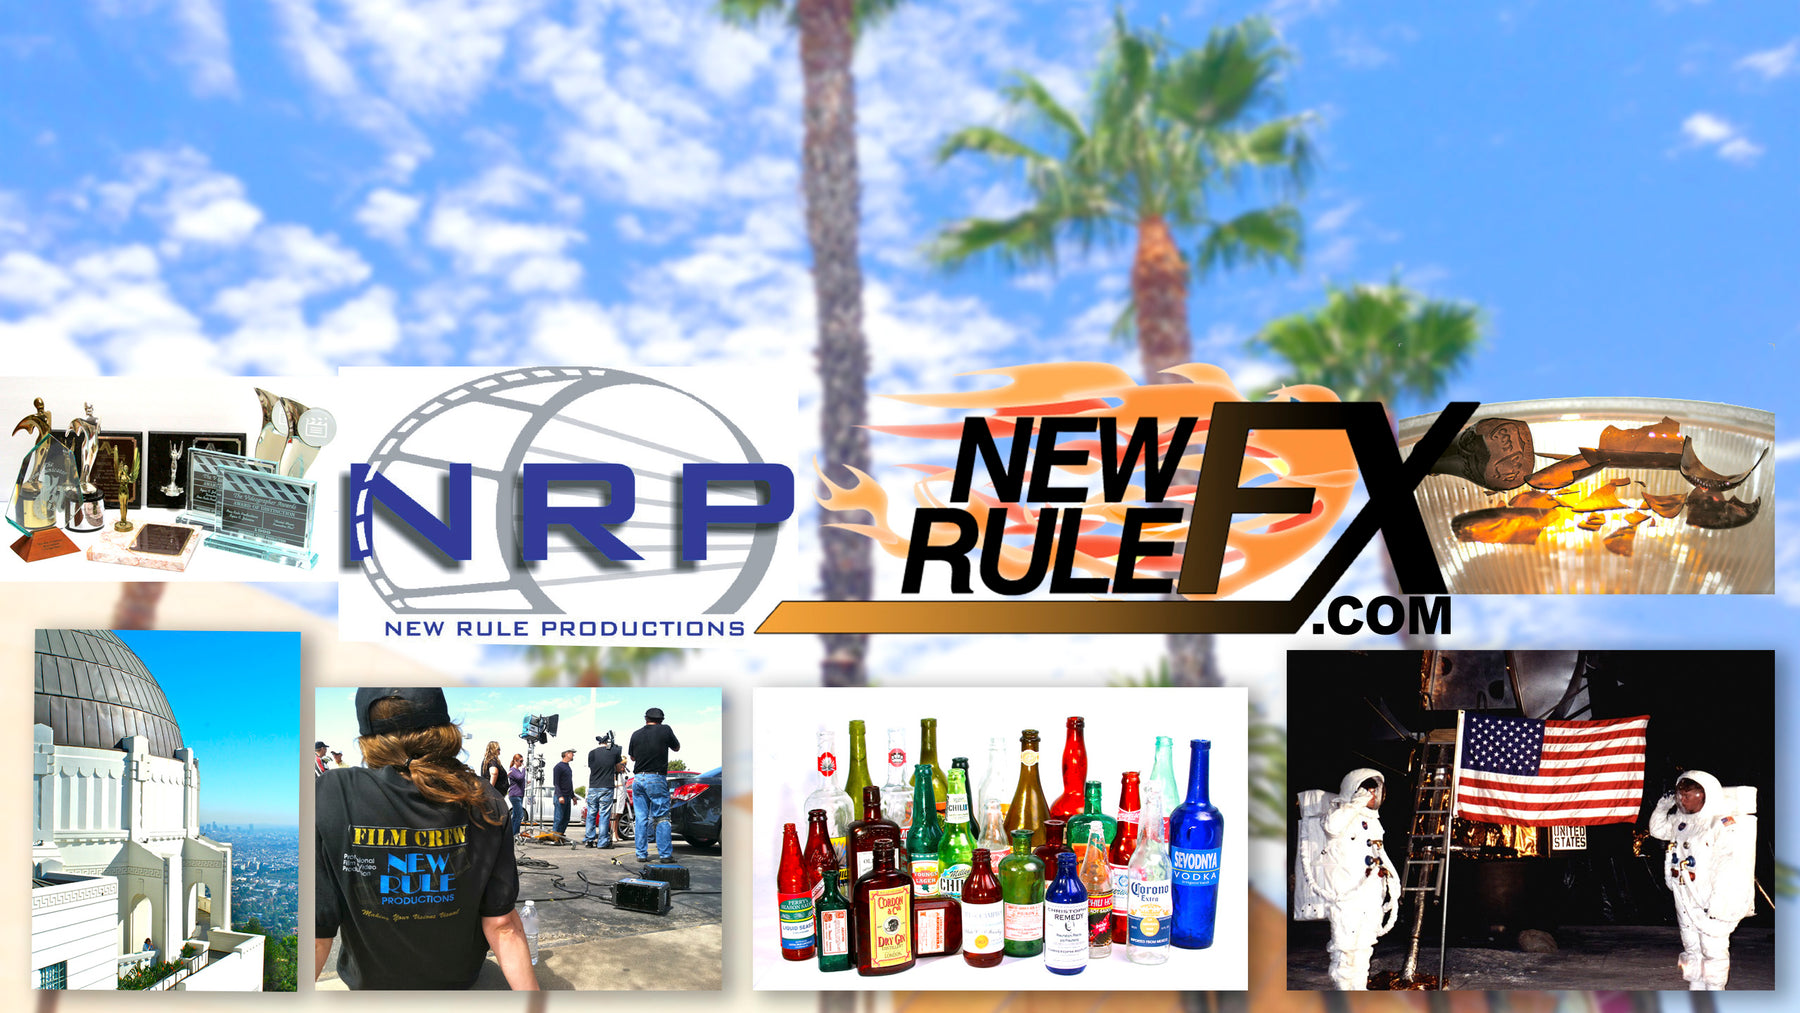 NewRuleFX Media and YouTube Channel